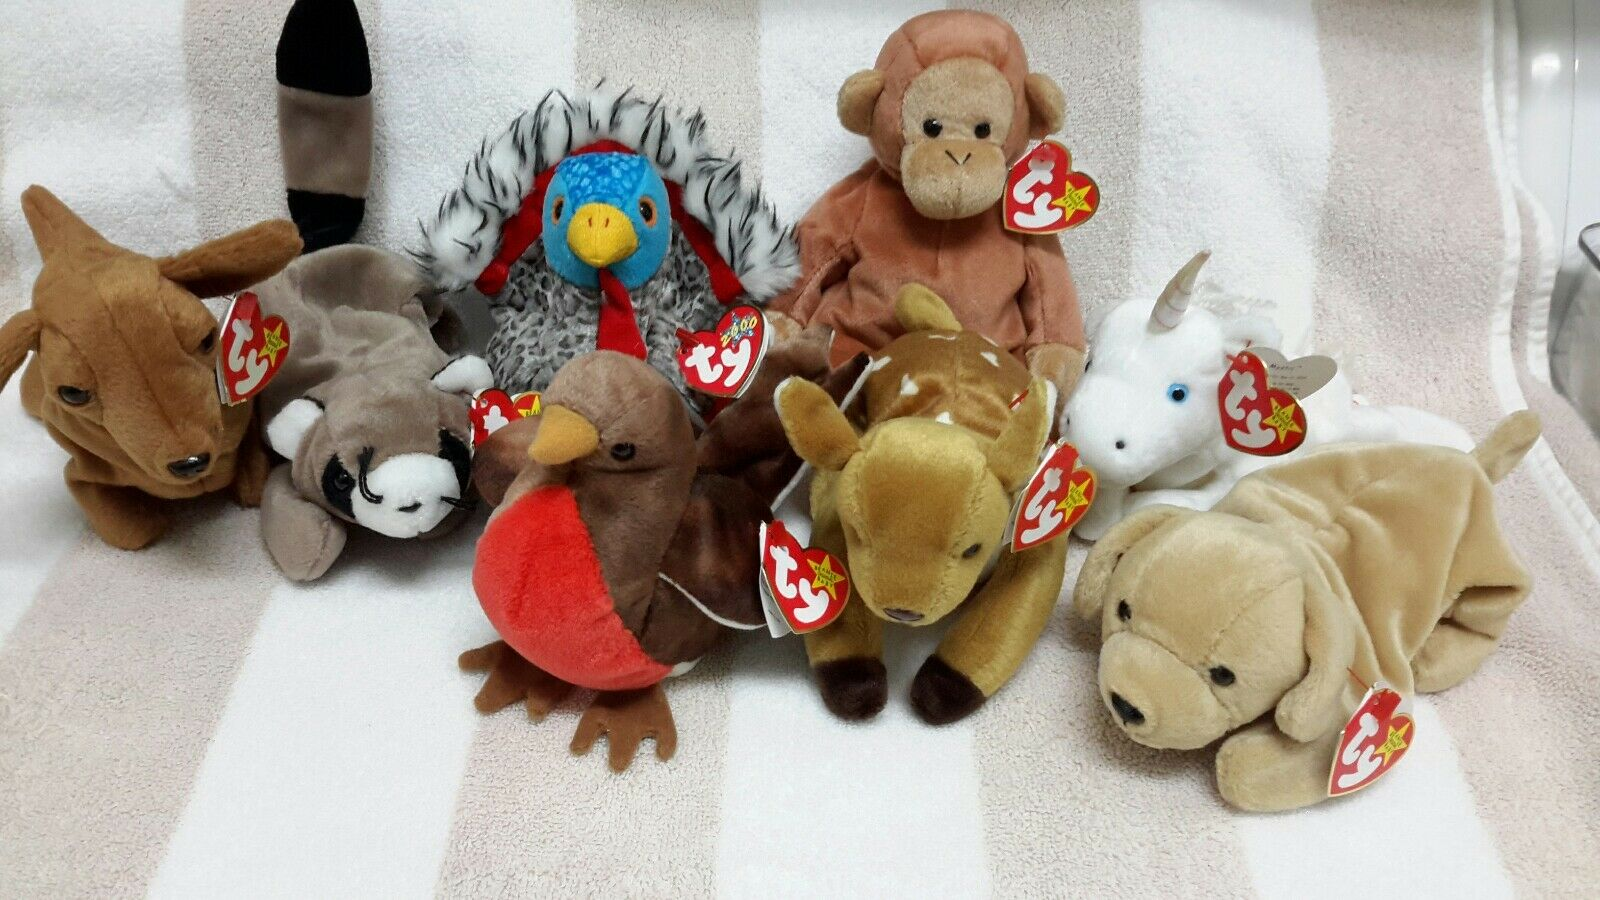 Lot of 8 Ty Beanie Babies, Never used 1994-2000